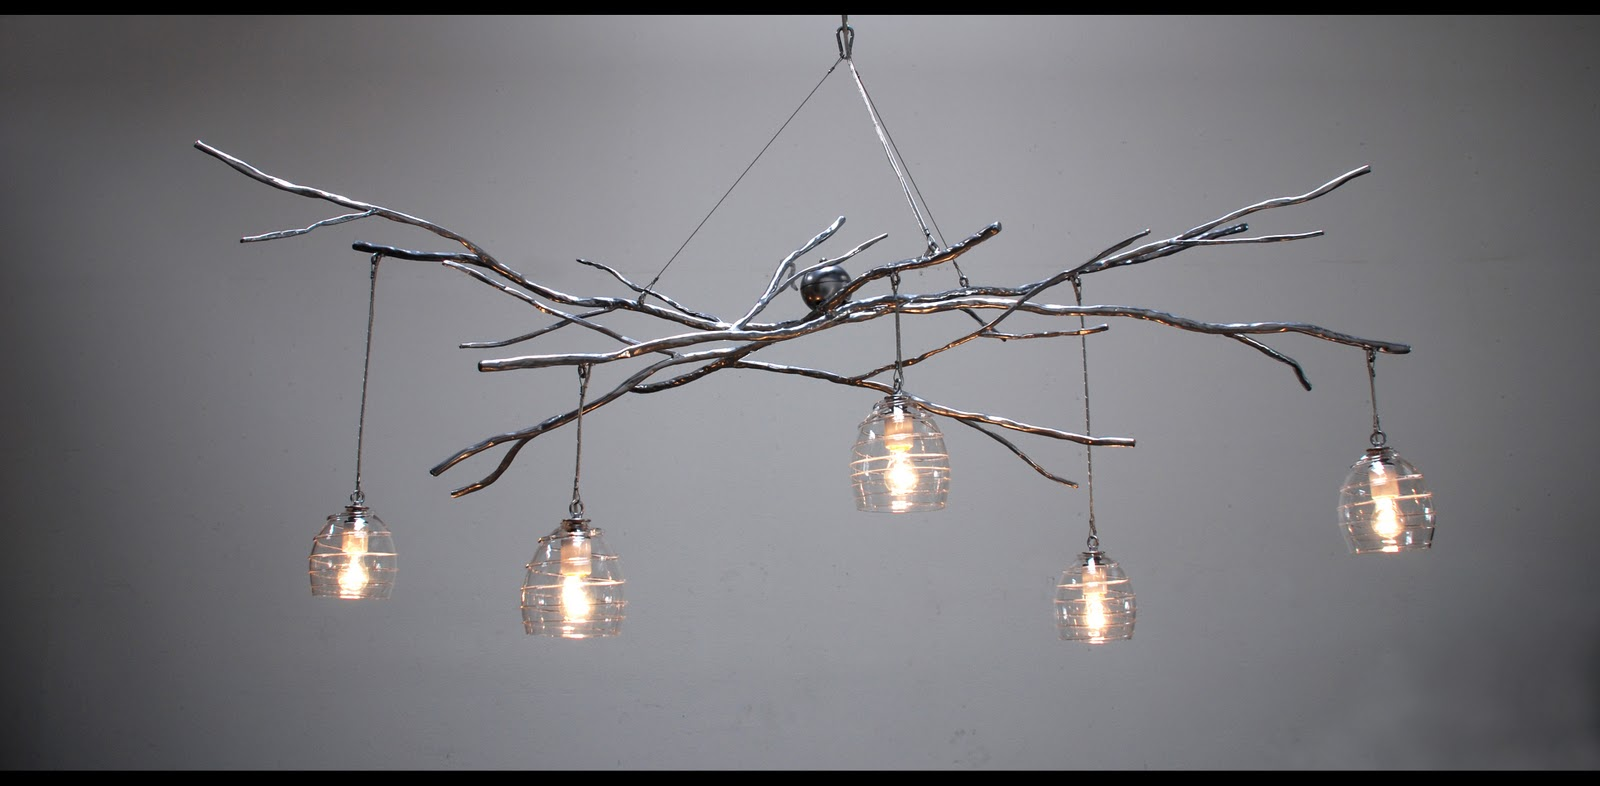 branch chandelier lighting. Delicate, Sculptural, Just The Right Amount Of Light. Branch Chandelier Lighting